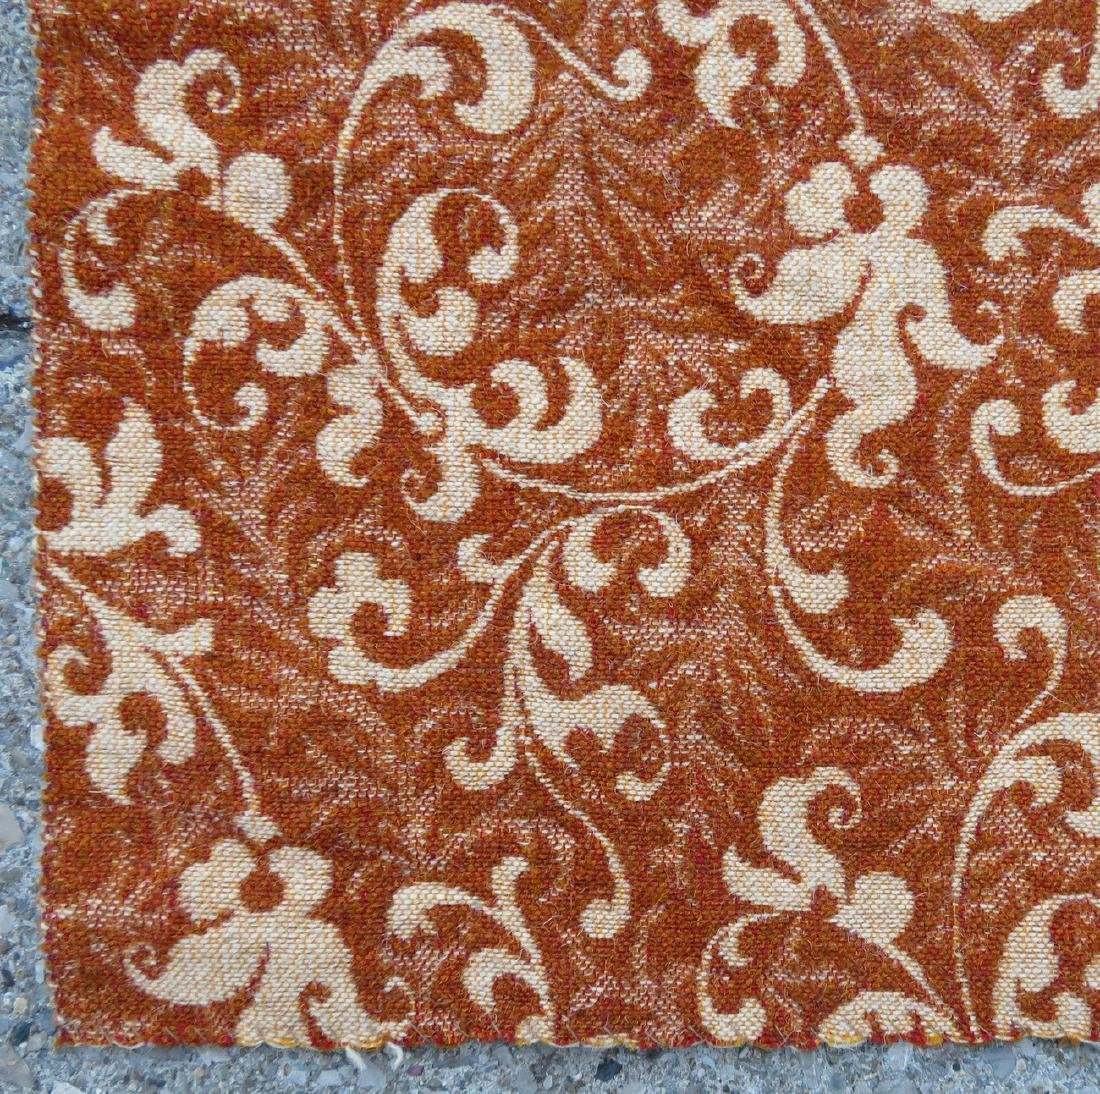 A large homespun ingrain carpet in earth tone colors, - 2